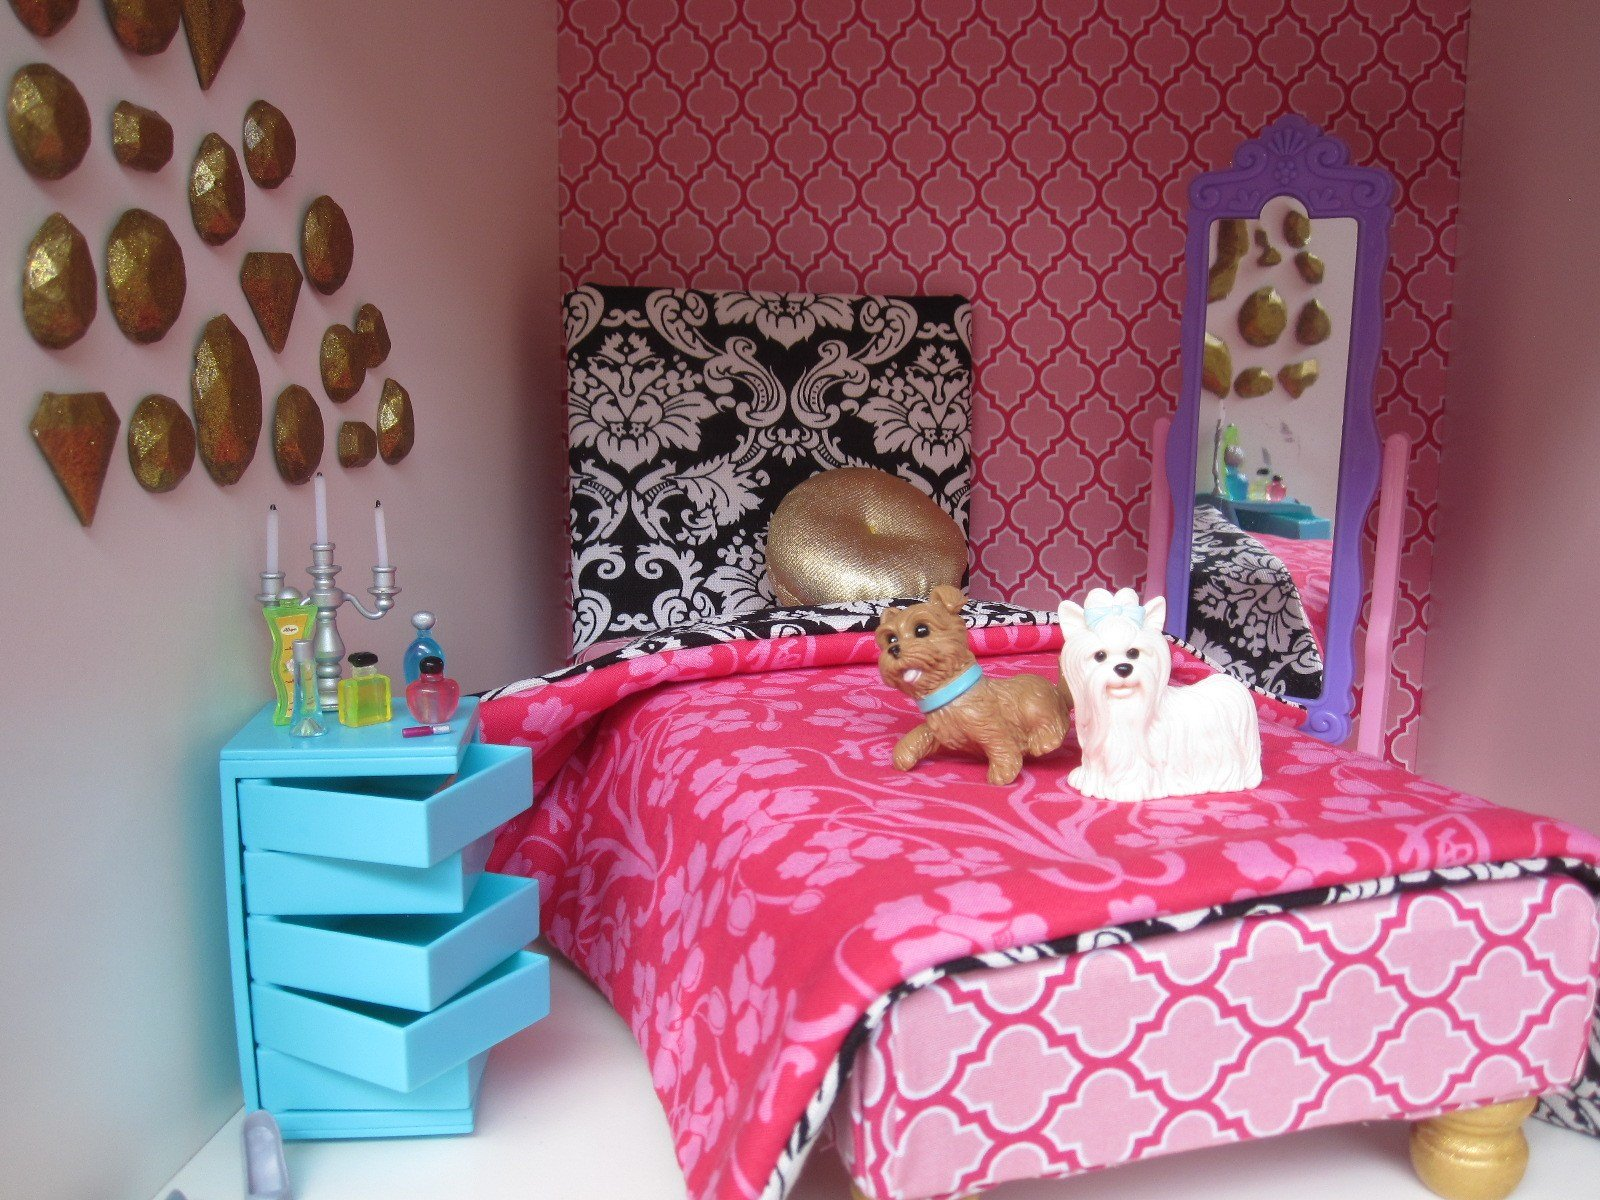 Best Diy Dollhouse From An Ikea Bookshelf Cathie Filian Steve Piacenza With Pictures